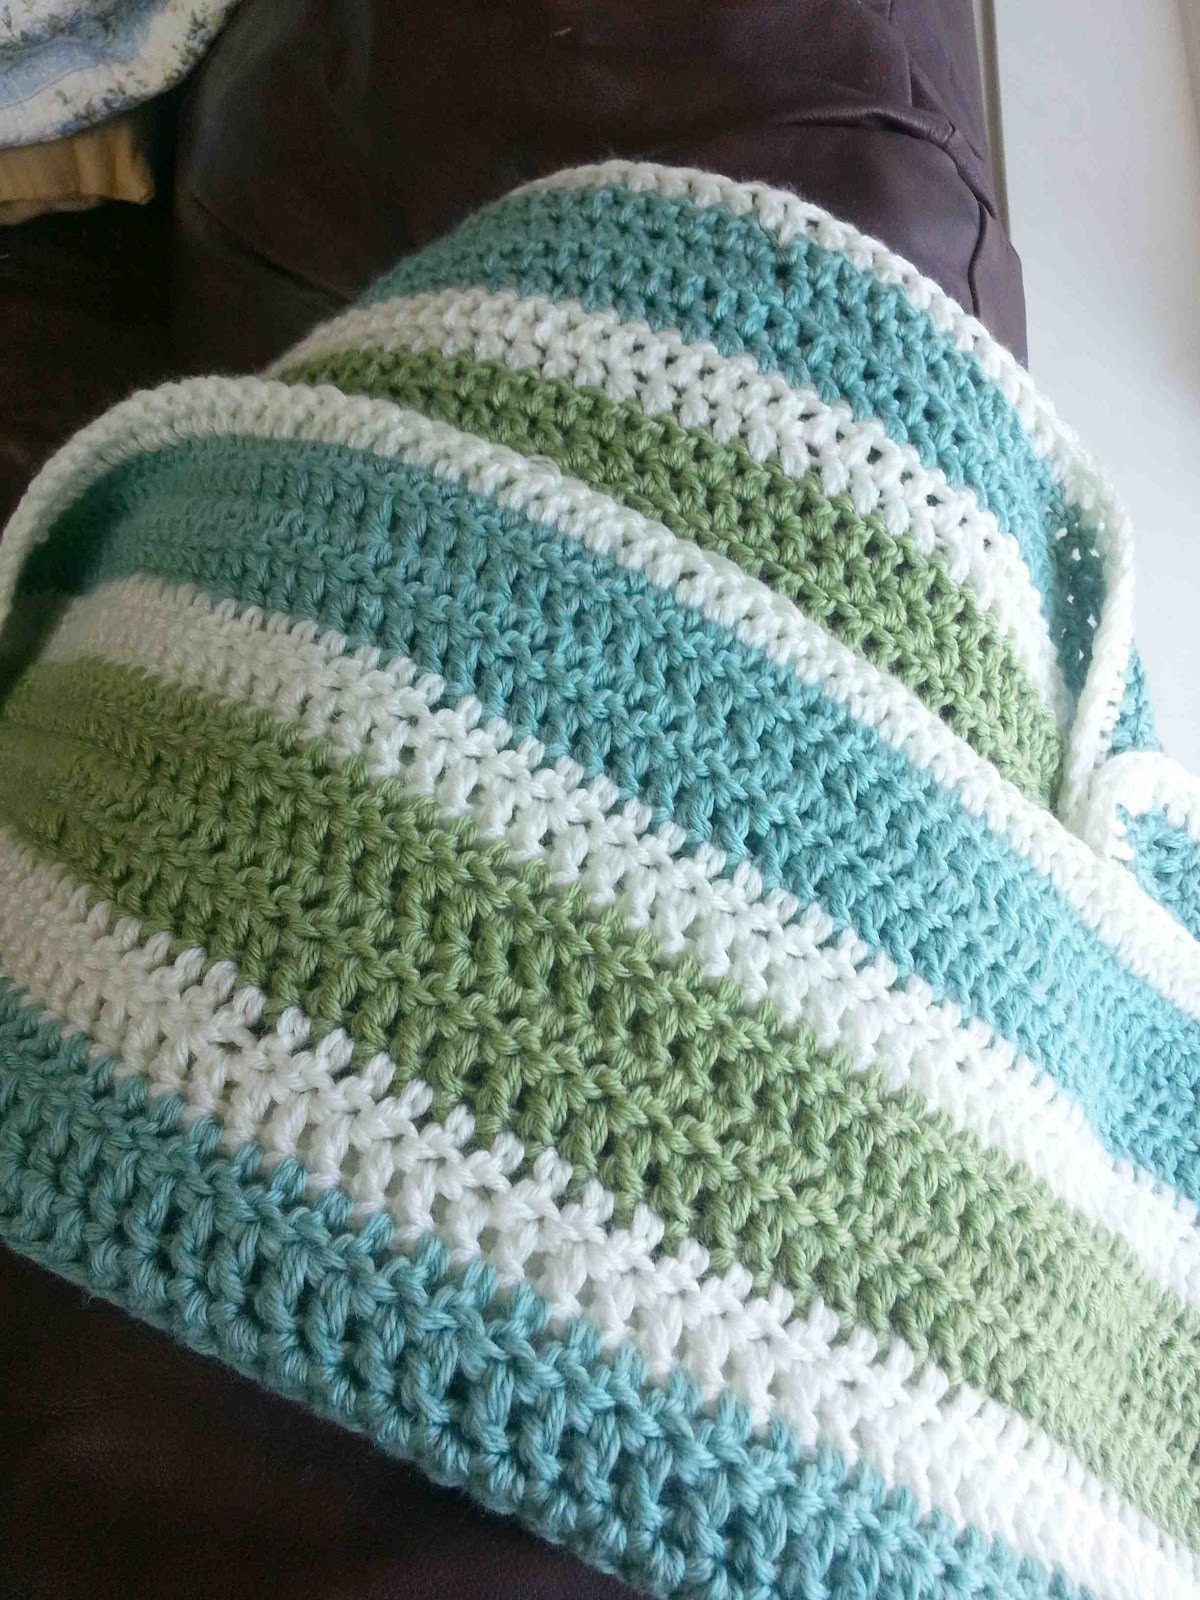 Easy Crochet Afghan Inspirational Made by Me D with You Striped Crochet Afghan Of Charming 48 Images Easy Crochet Afghan